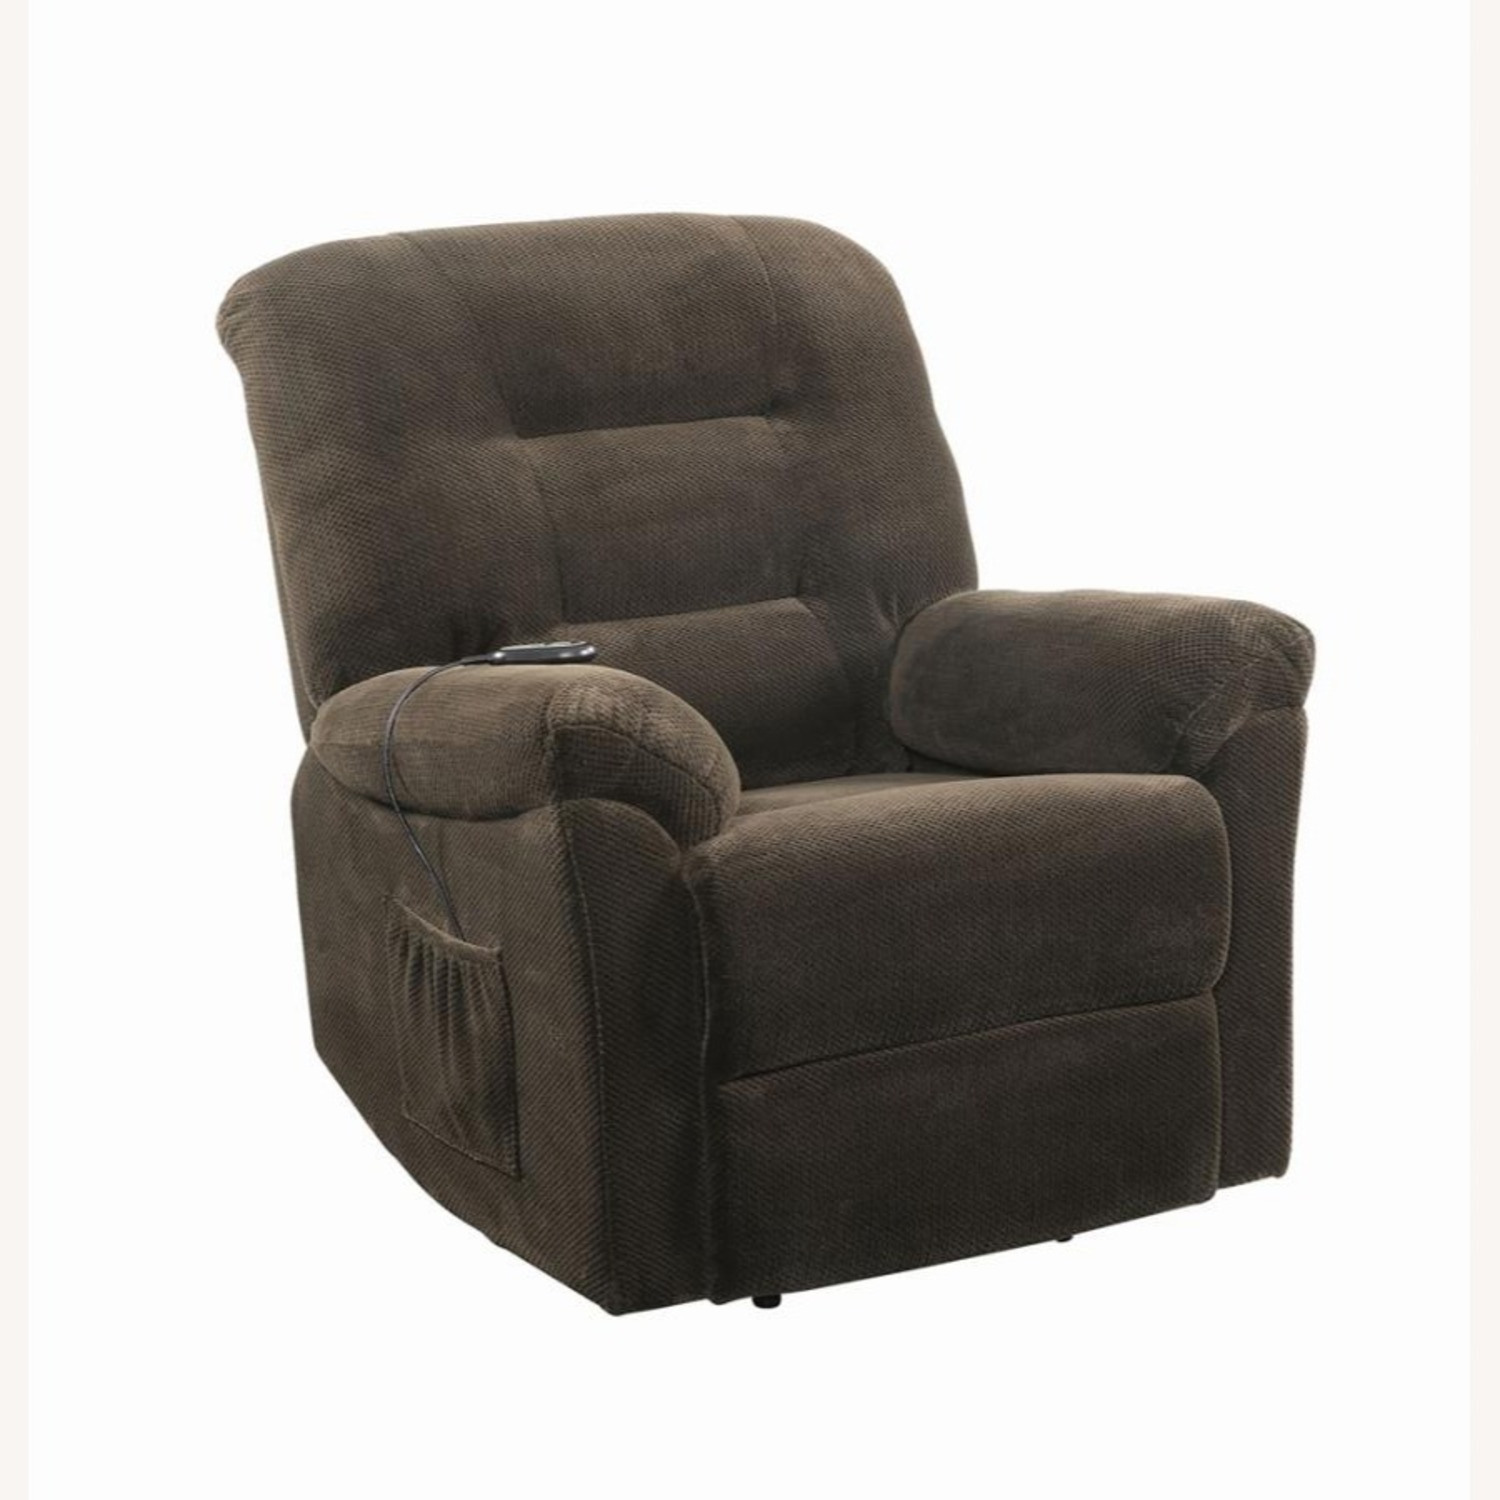 Power Lift Recliner In Chocolate Chenille Fabric - image-0